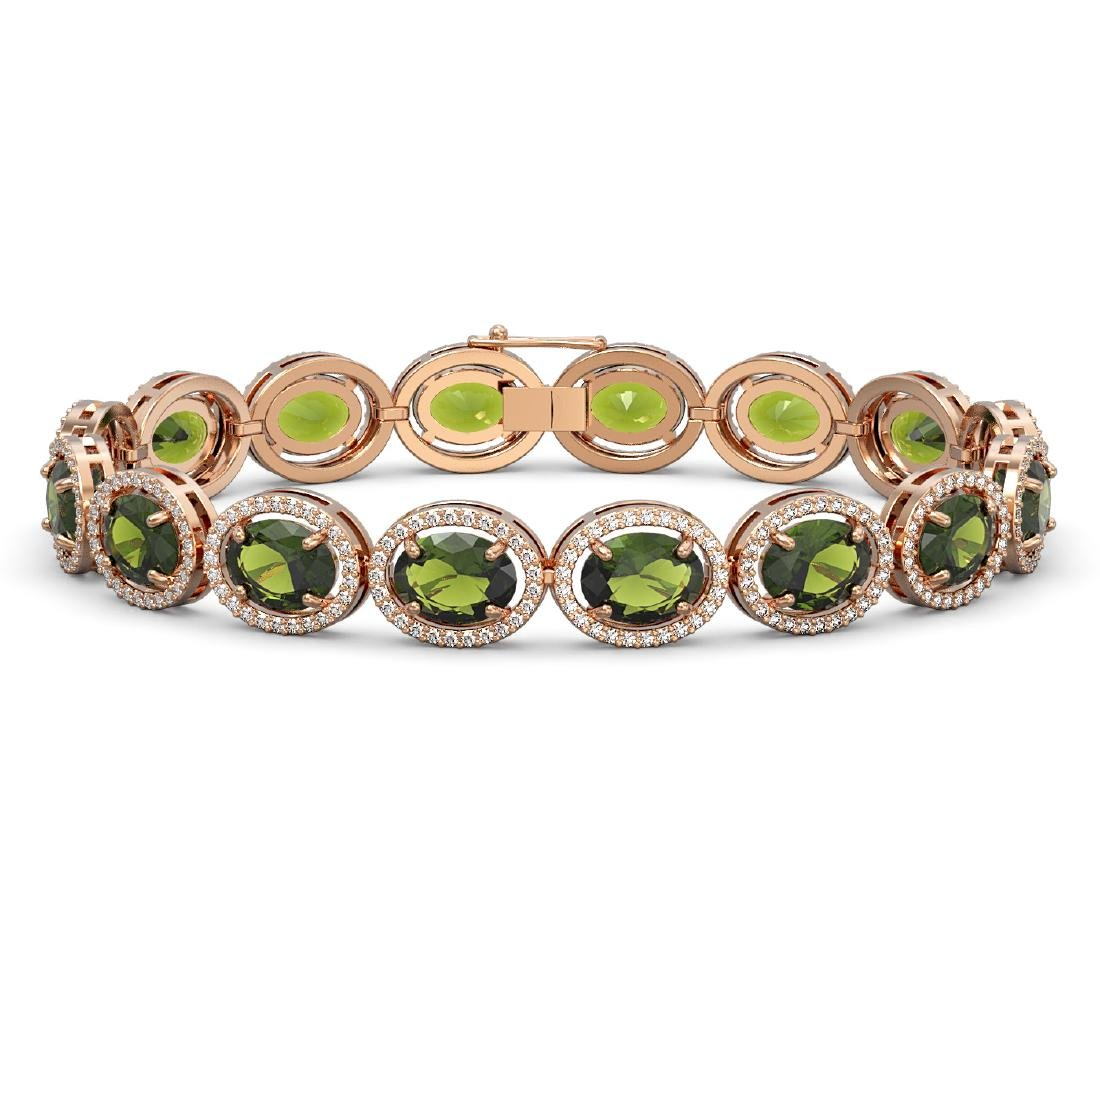 23.6 CTW Tourmaline & Diamond Halo Bracelet 10K Rose